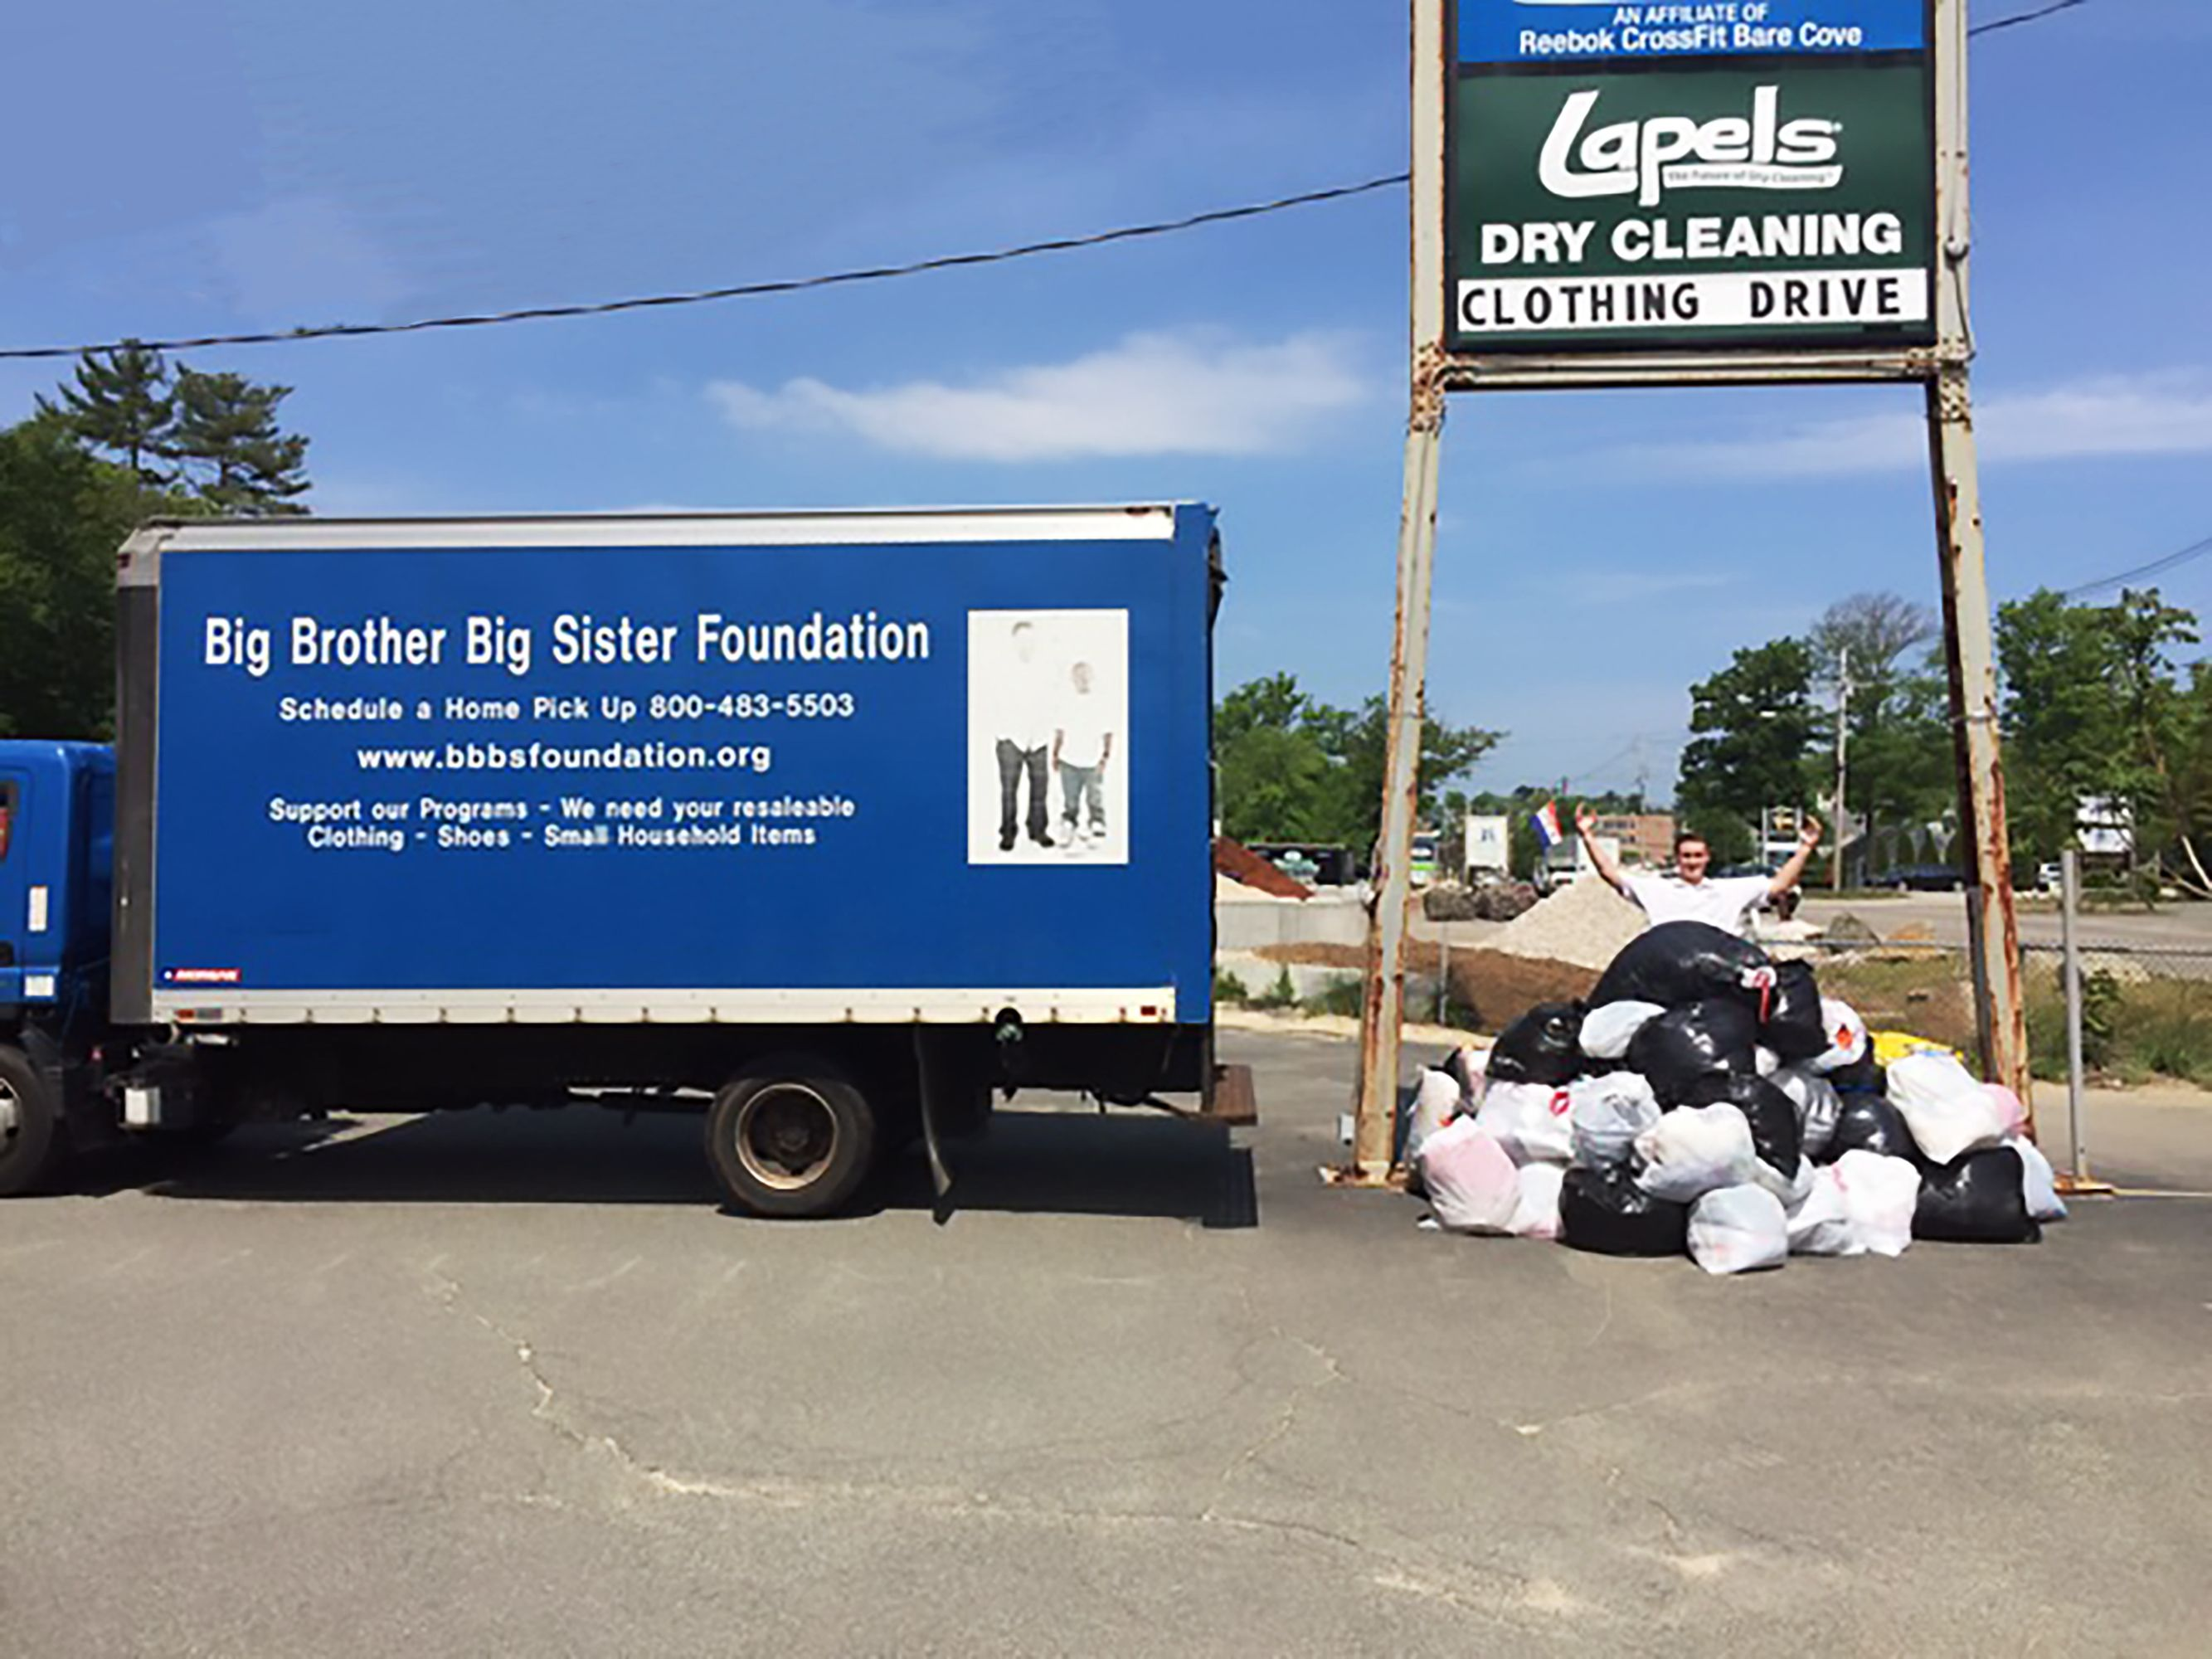 photo of Lapels Dry Cleaning clothing drive